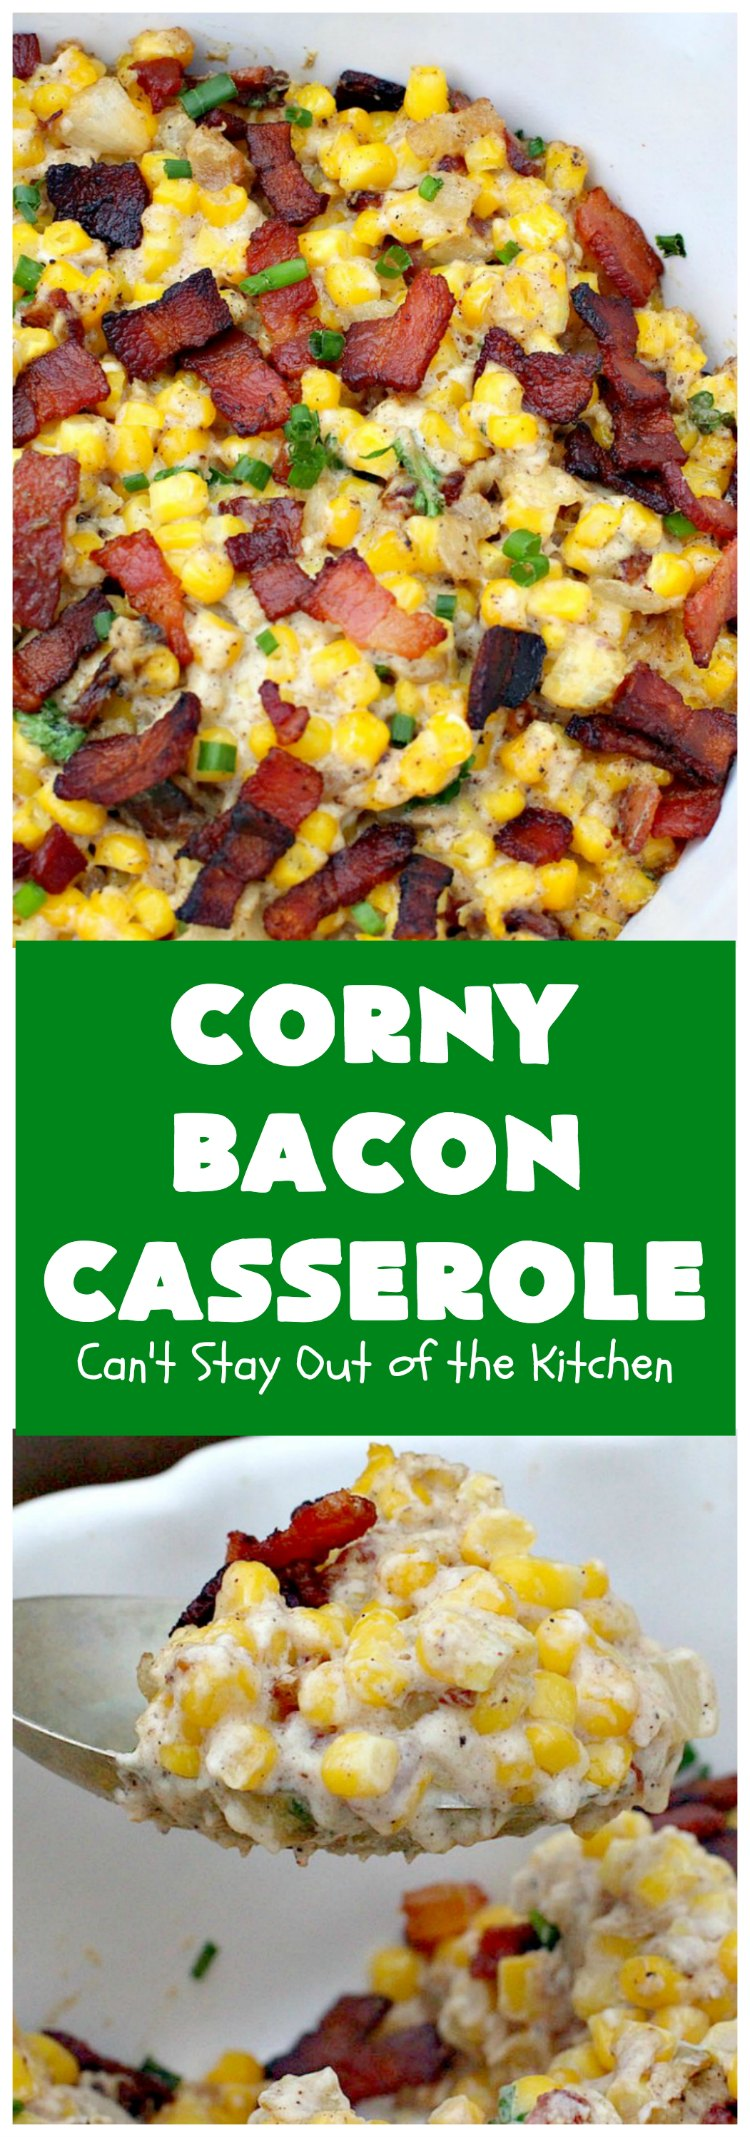 Corny Bacon Casserole | Can't Stay Out of the Kitchen | this delightful #CornCasserole is terrific for #holiday menus like #MothersDay or #FathersDay. It's chocked full of #corn & #bacon & so scrumptious everyone will want extra servings! #CornyBaconCasserole #SideDish #HolidaySideDish